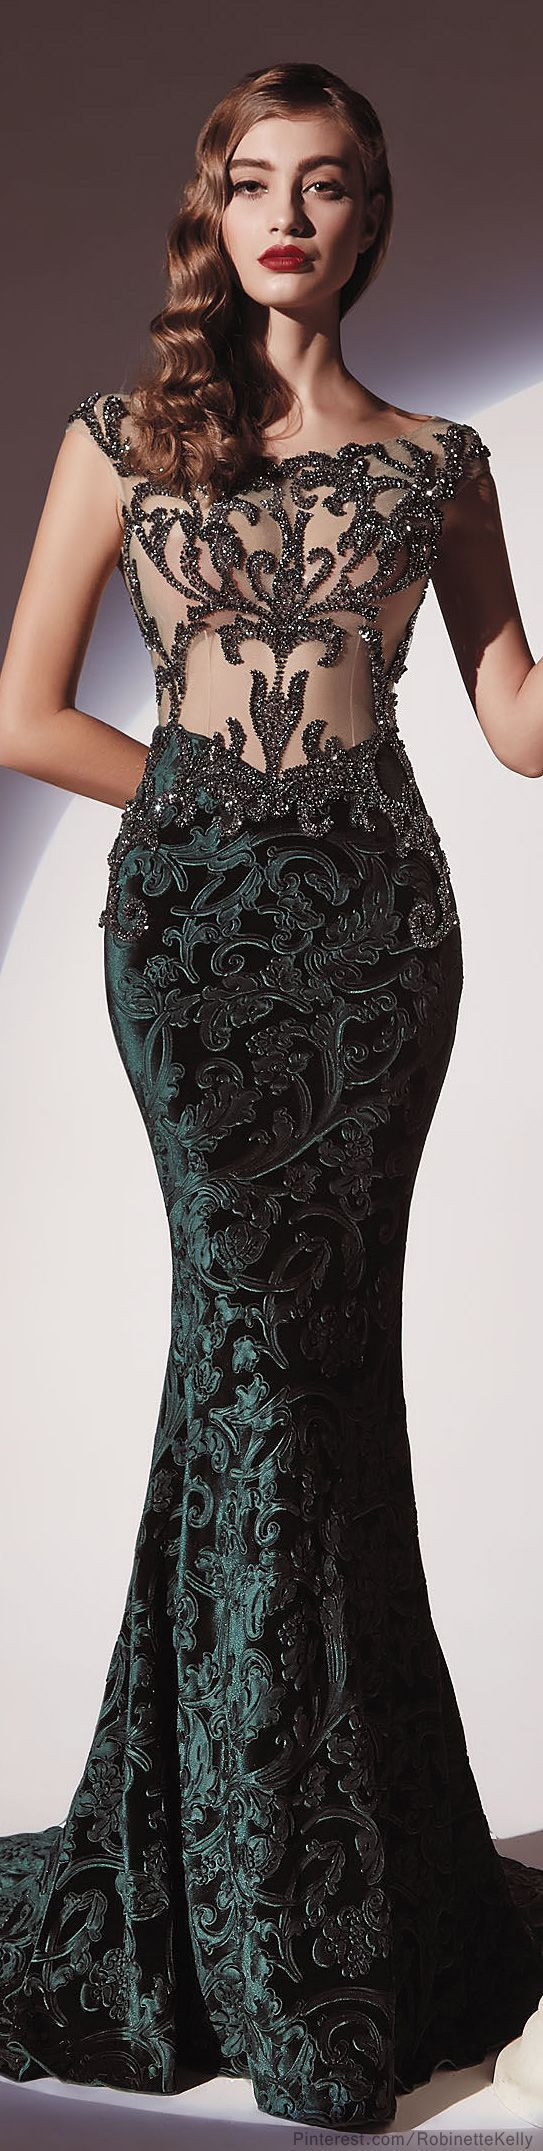 Fustana 2015 modele te fustanave 2015 dresses 2015 fustana modele te - What A Beautiful 1920 Style Dress The Dark Shimmering Green Gives It A Realy Elegant Look Dany Tabet